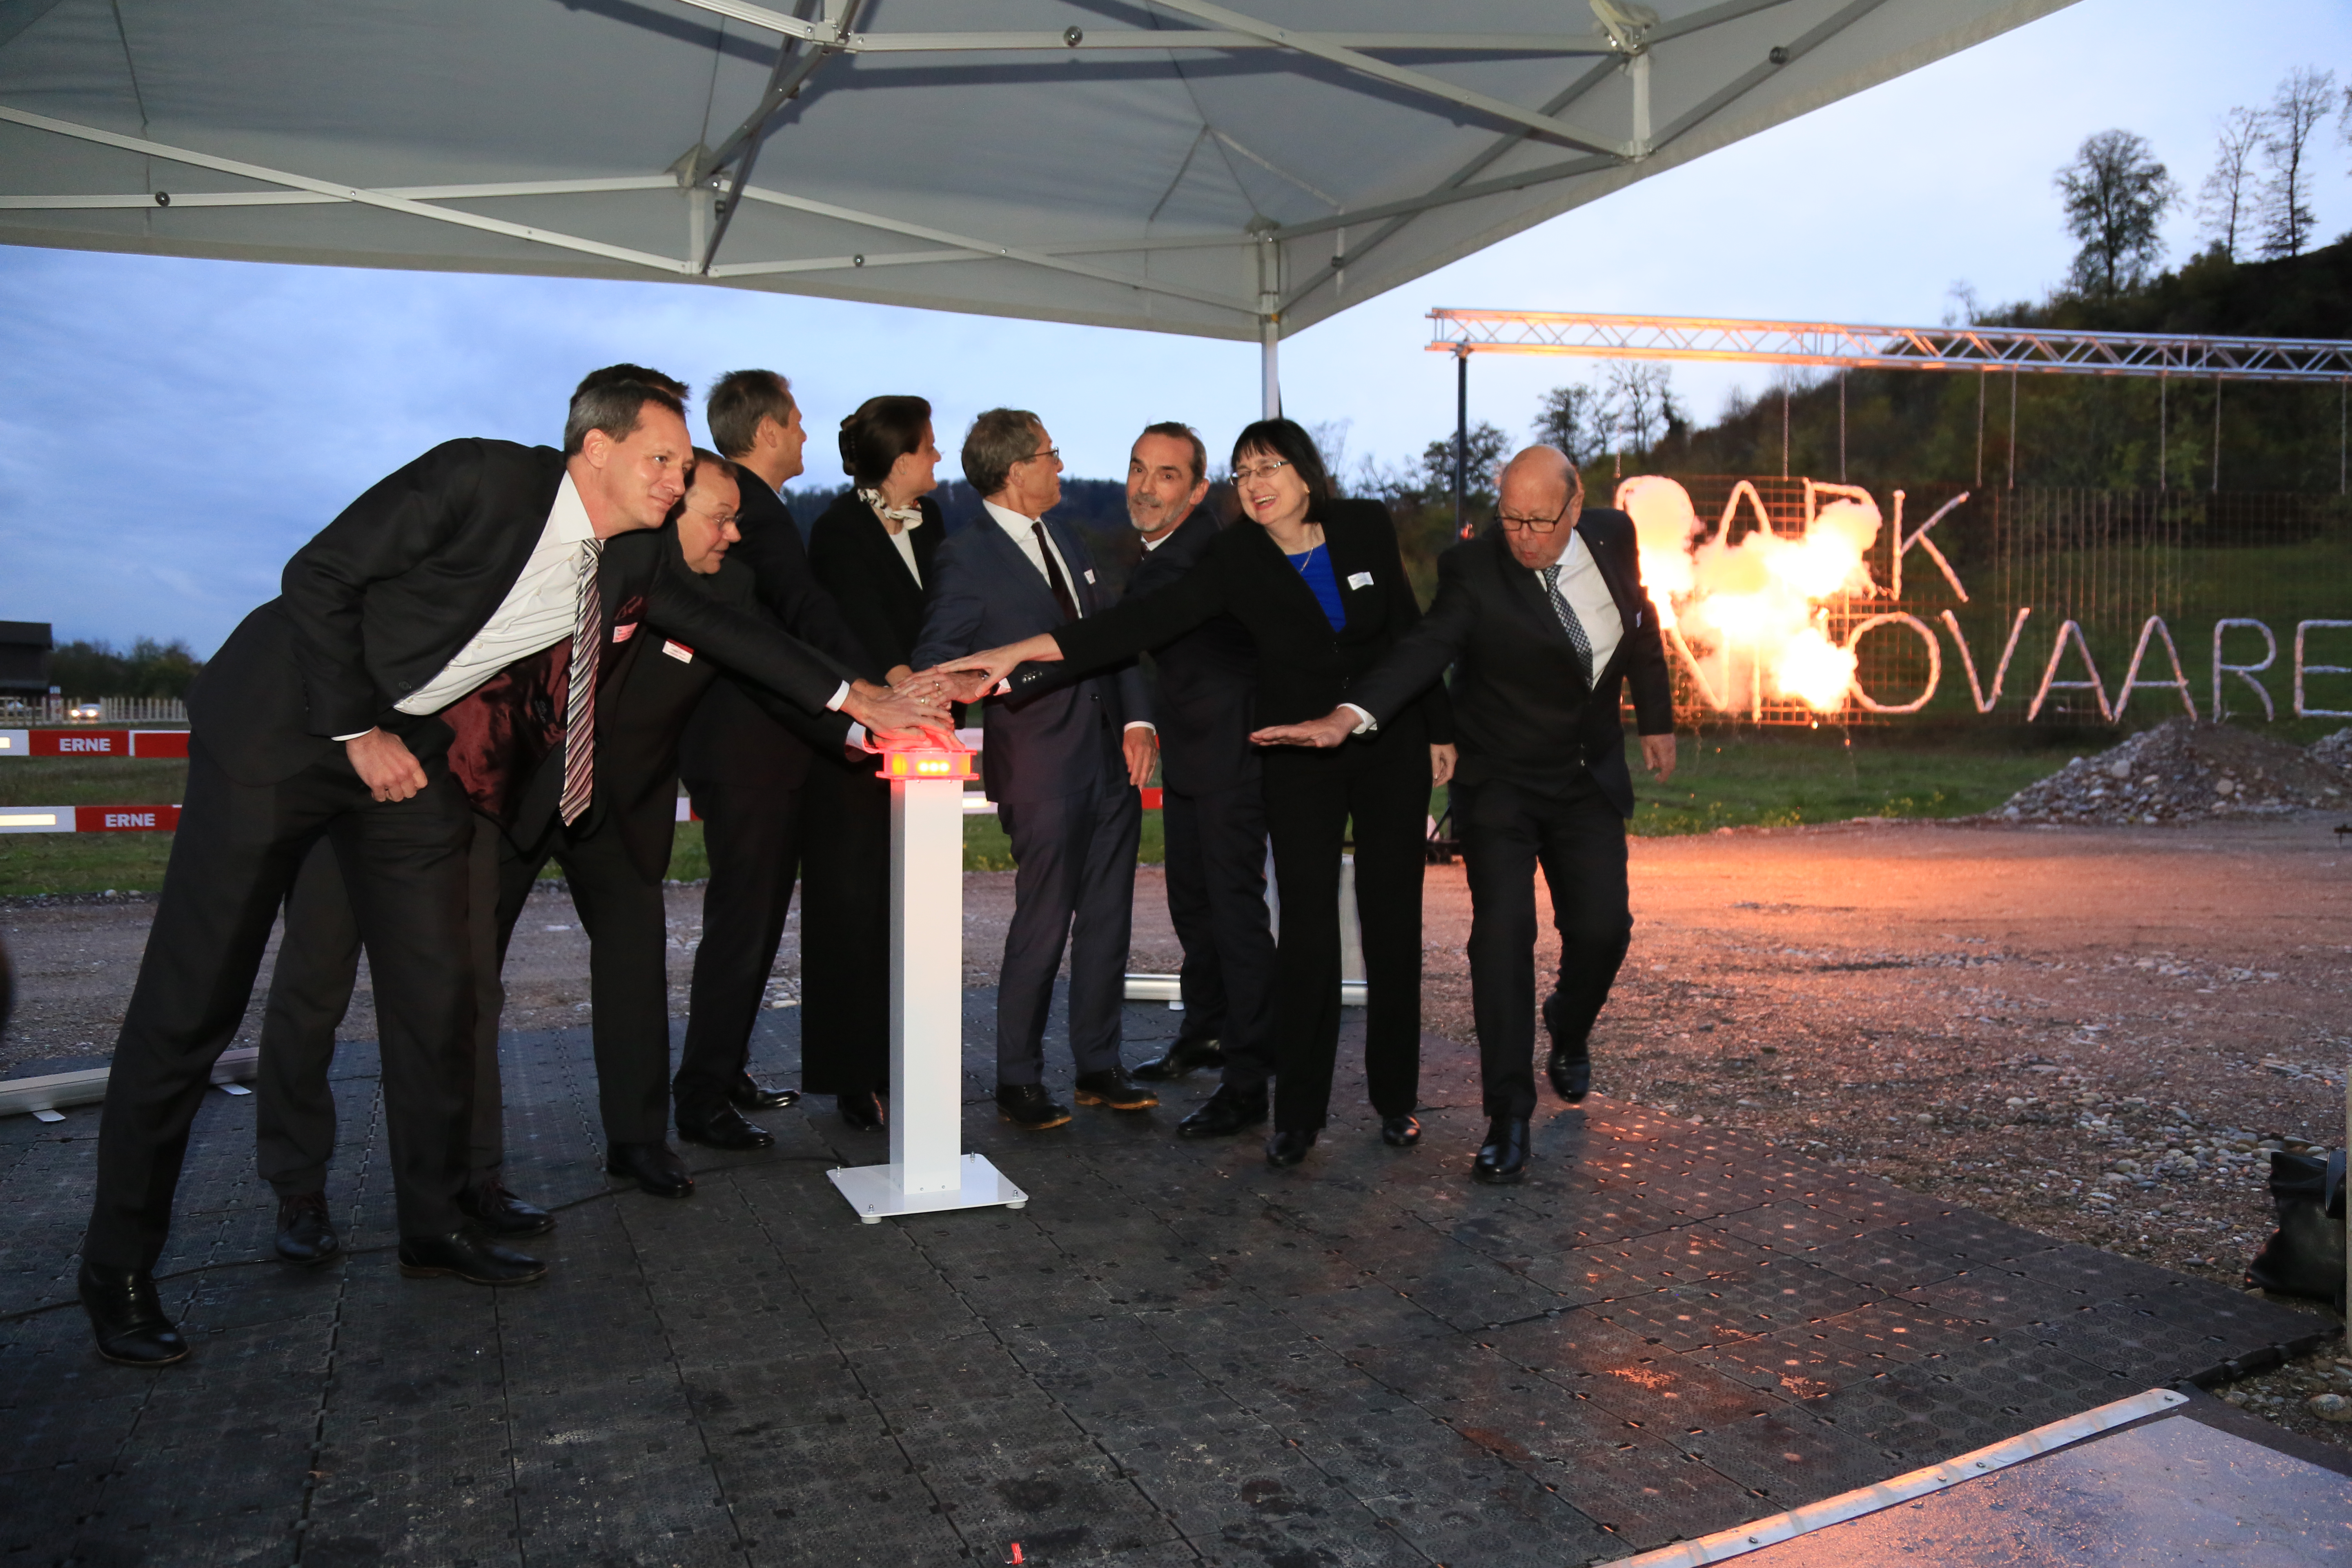 Lighting ceremony of the SIP innovaare symbol & groundbreaking of the new innovation campus